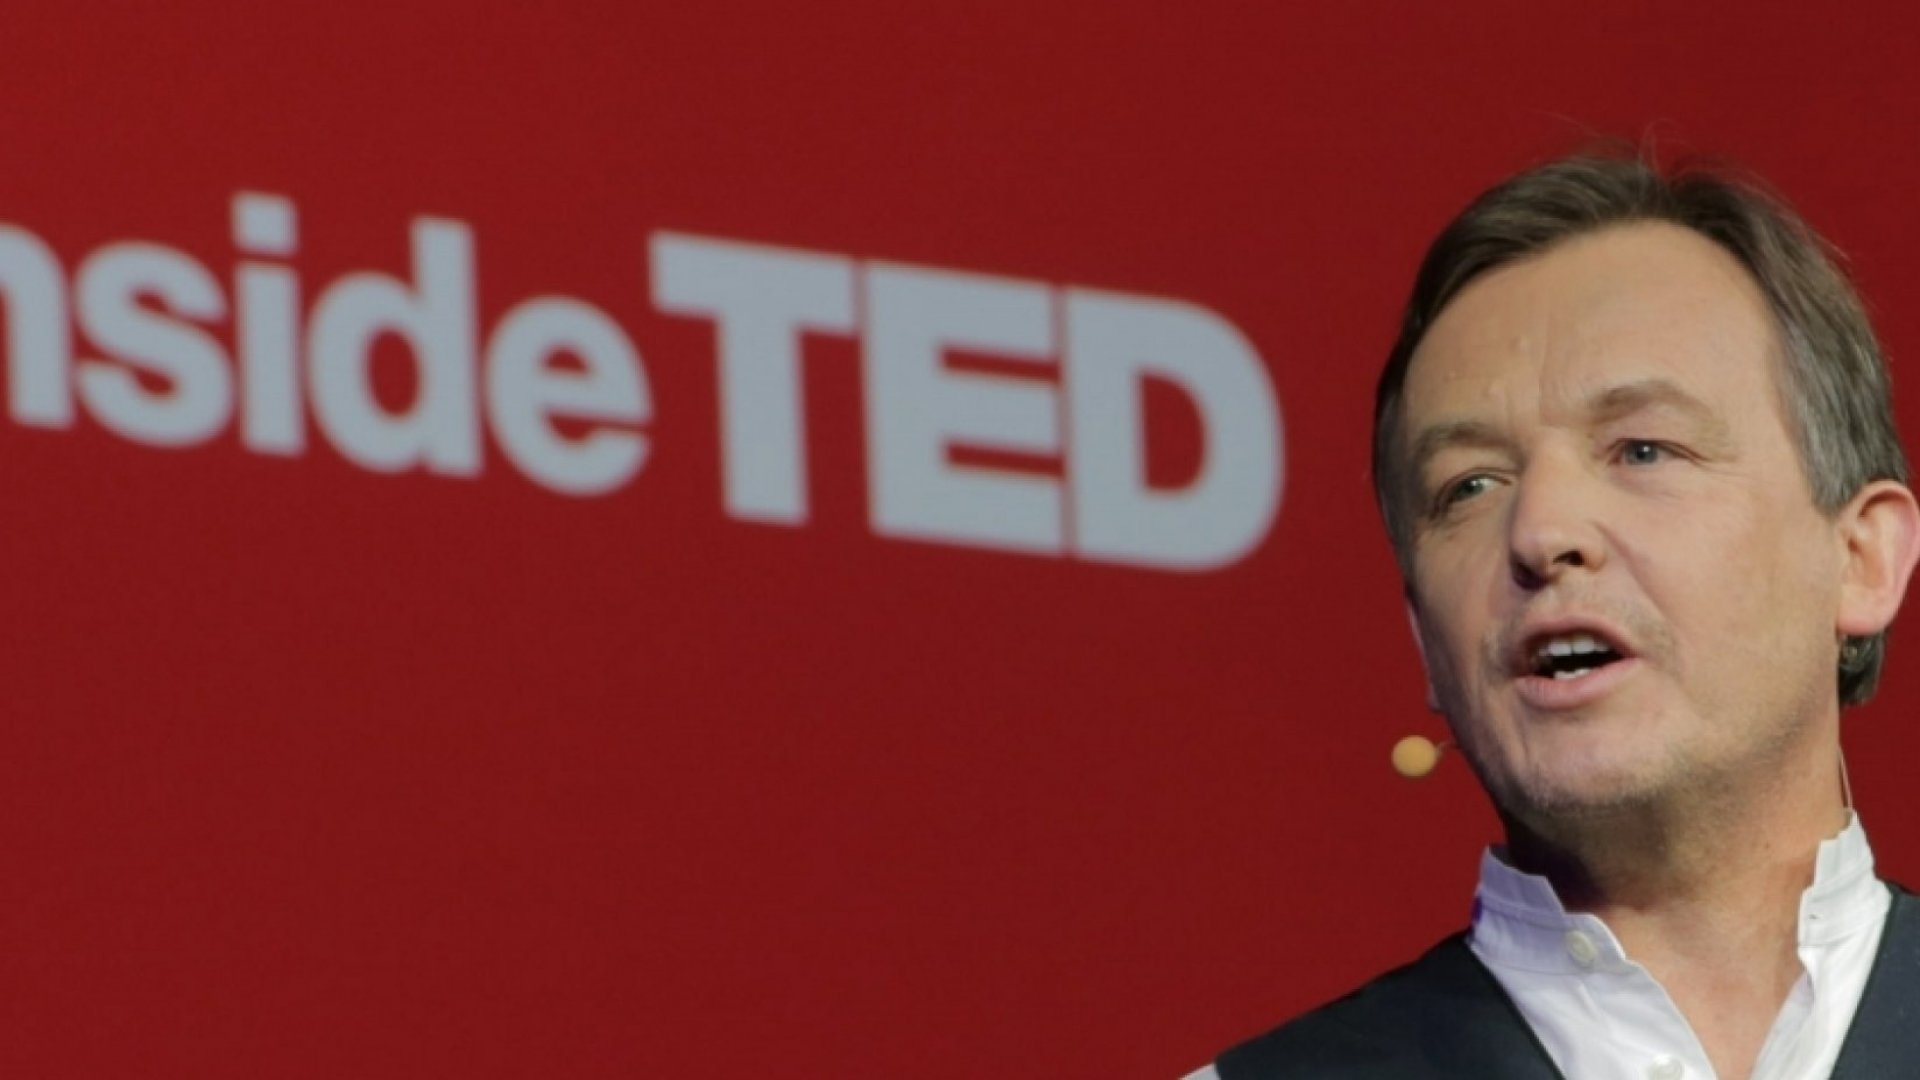 Like TED Talks? This 99-Second Video Shows Why You'll Never Need Another